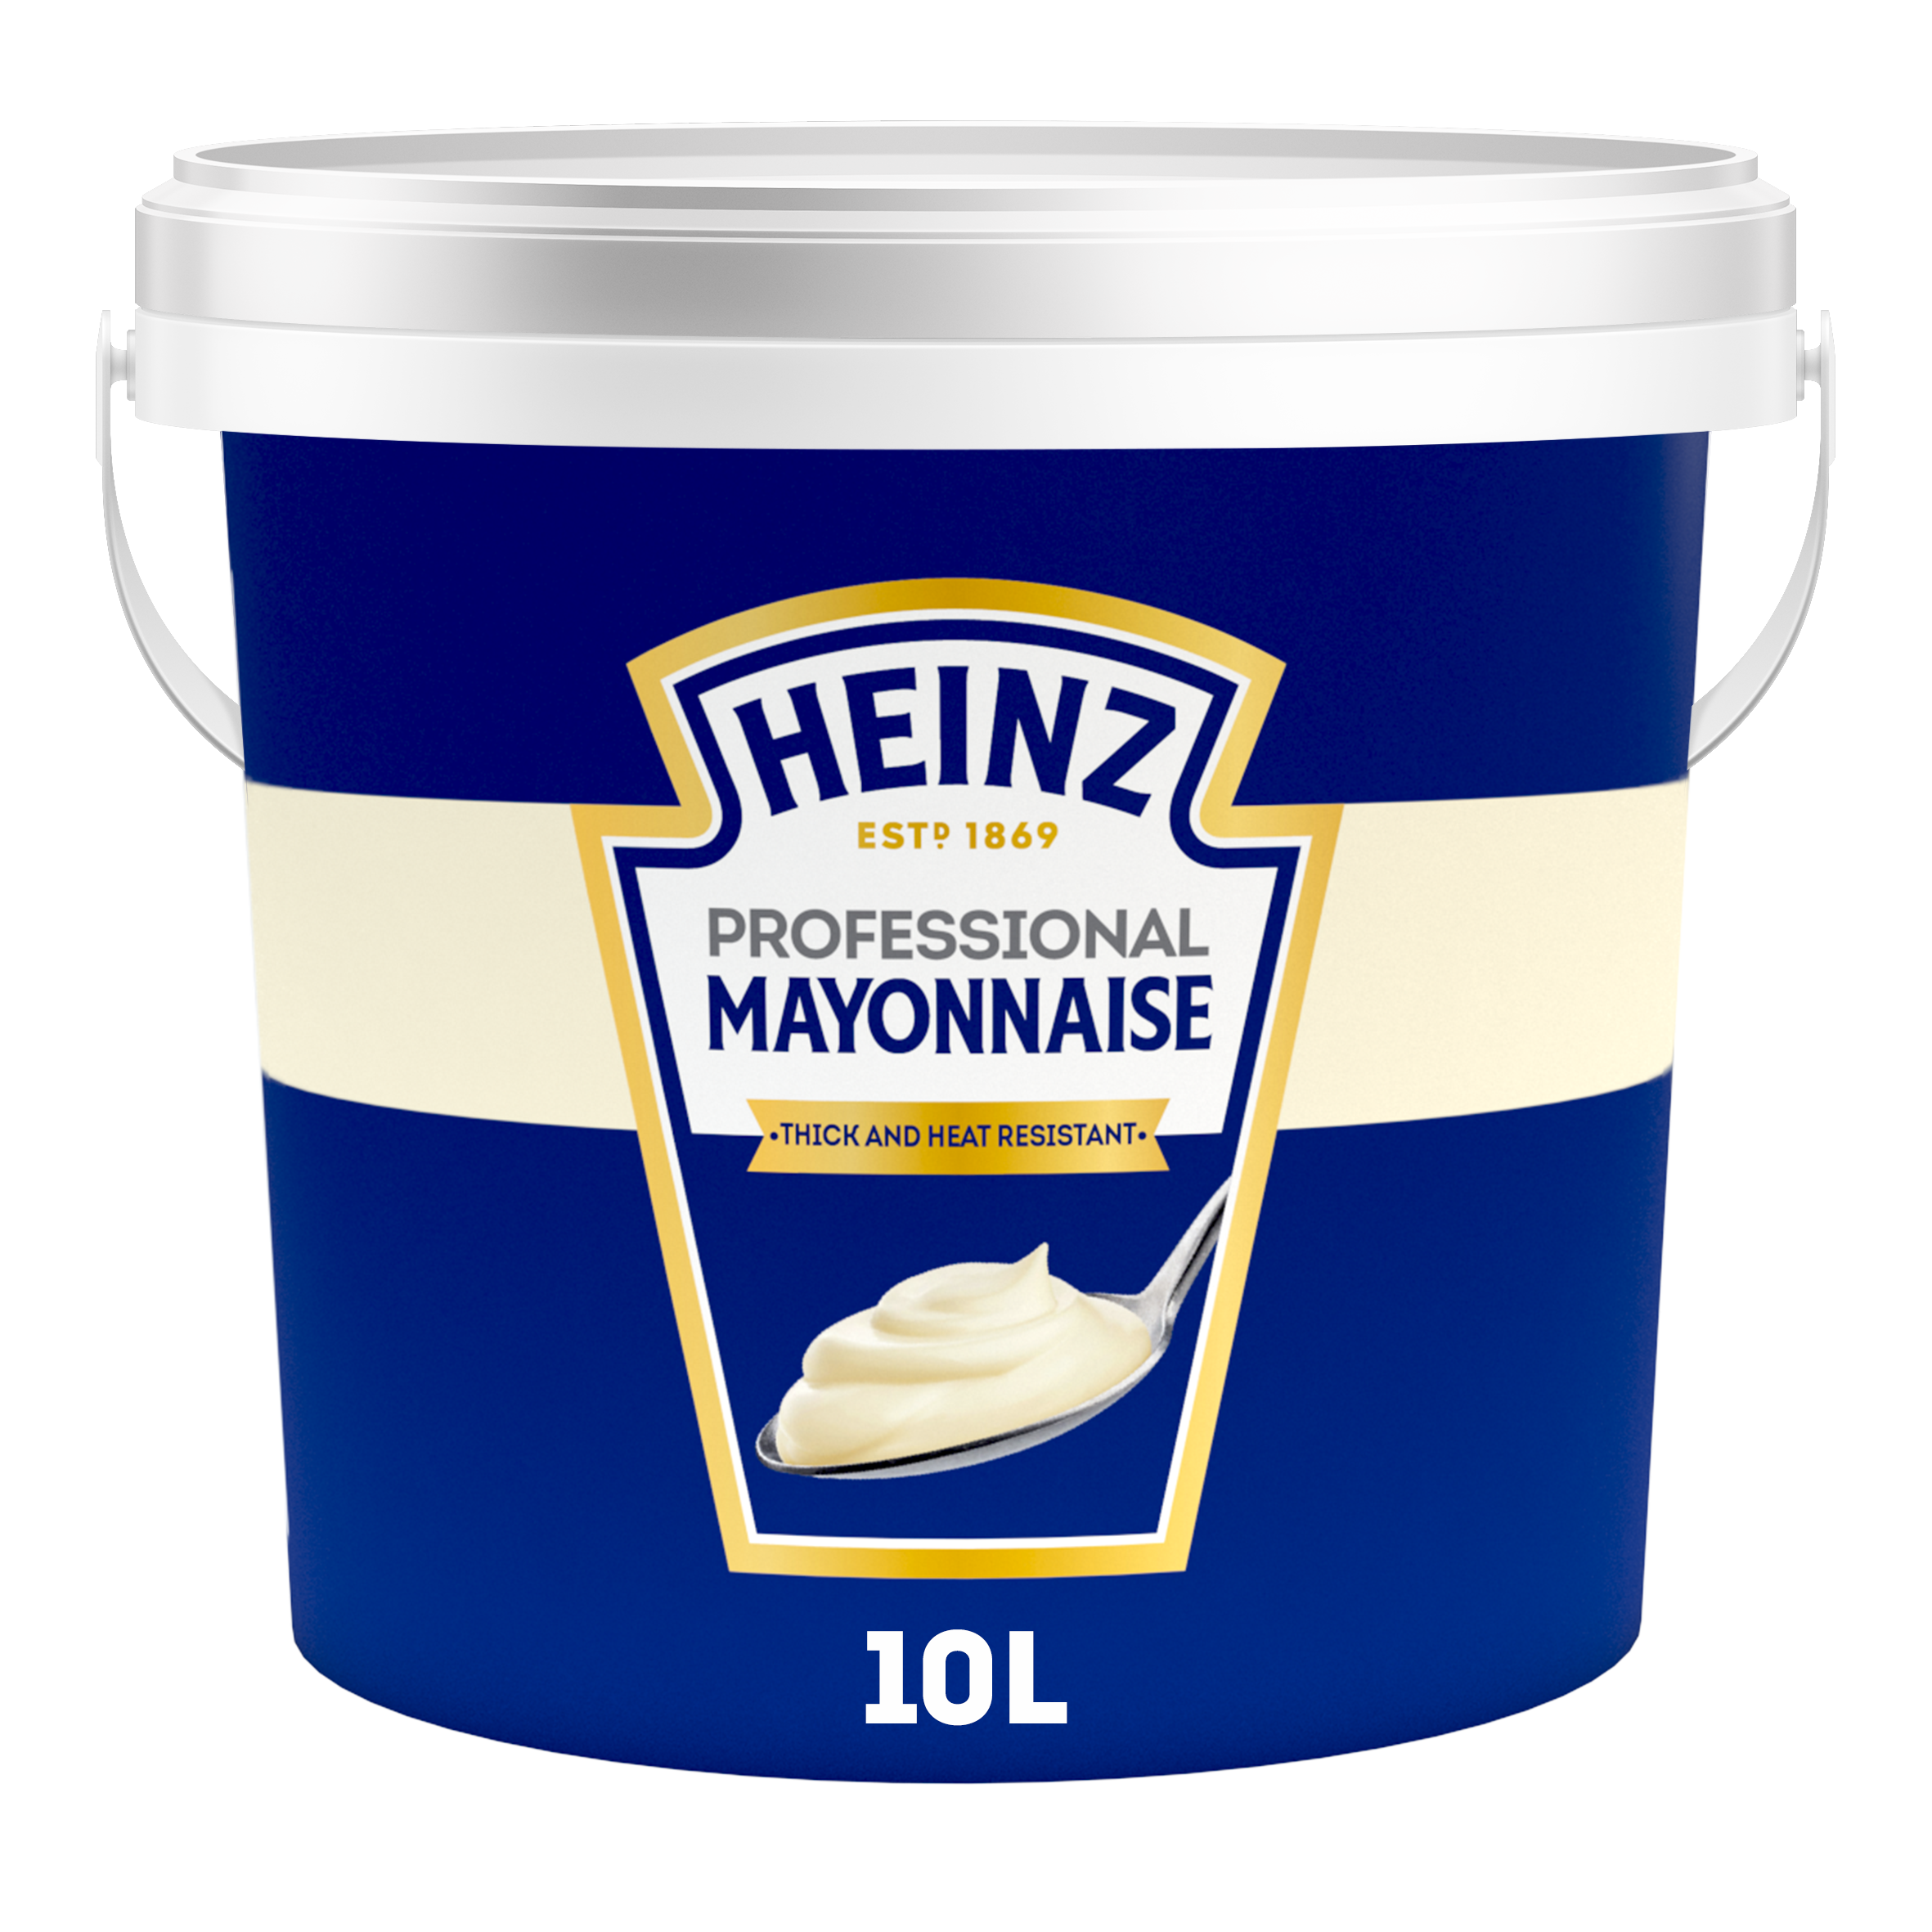 Heinz Professional Mayonnaise 10L image